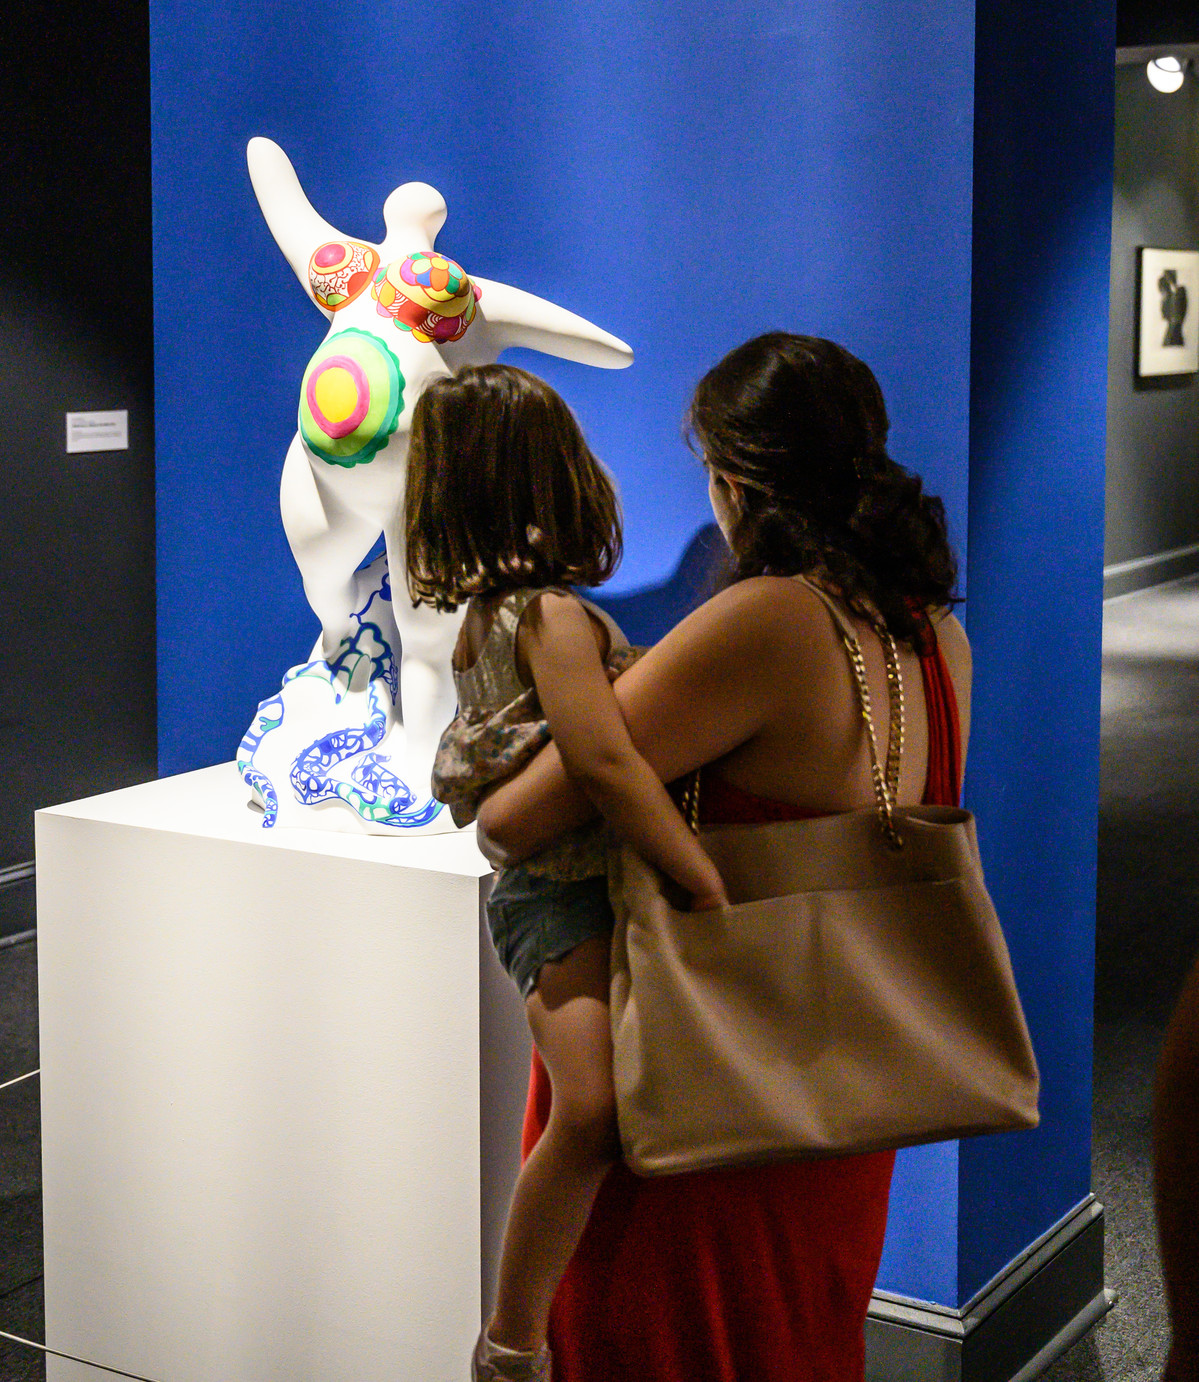 Partial view of a gallery with a woman carrying a child in her arms. Both figures with their backs facing the camera look at a contemporary marble sculpture against a deep blue wall. The faceless sculpture has a voluptuous white marble body, arms outstretched, and brightly-painted designs on its breasts and stomach.